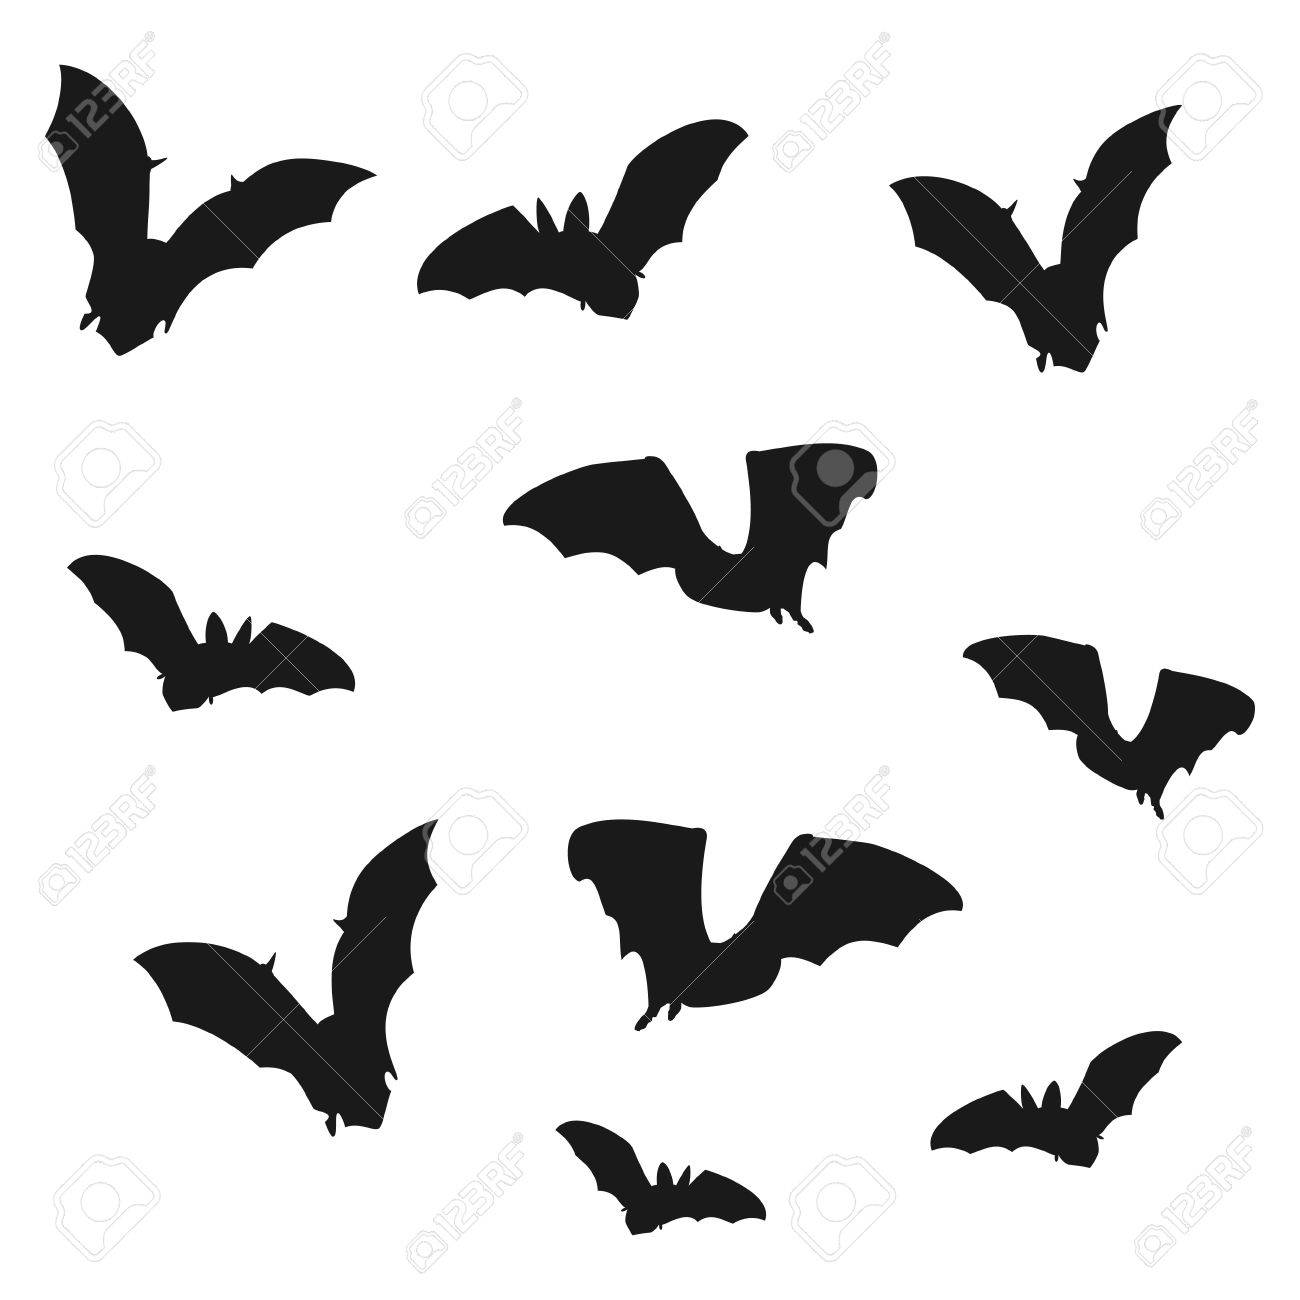 flock of bats black shadows of bats on a white background vector